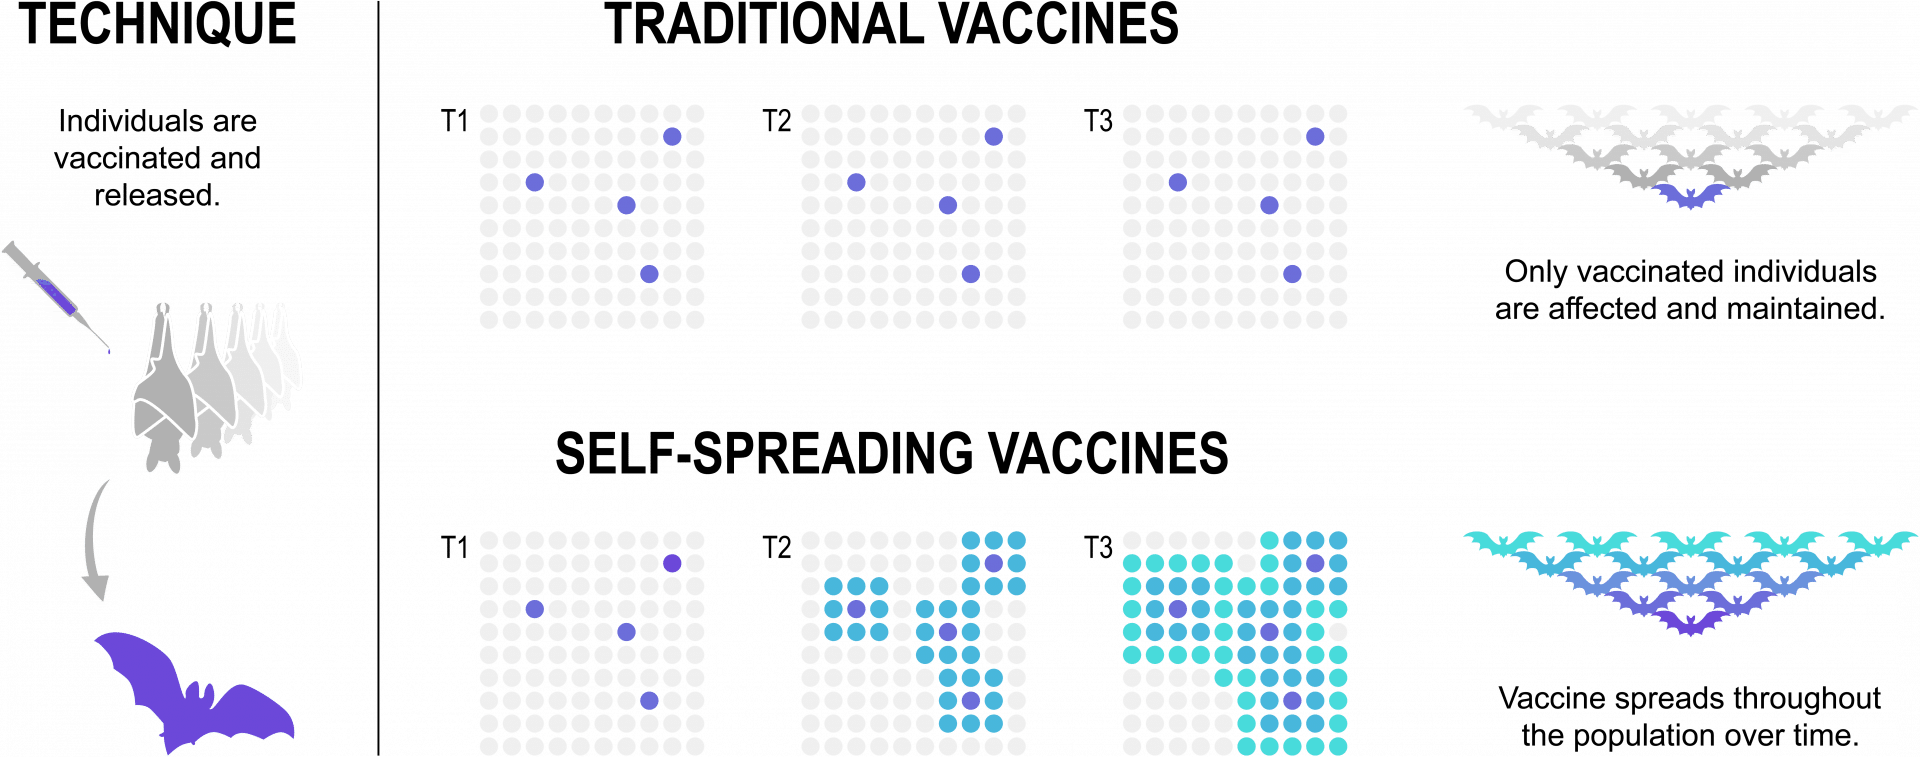 A diagram of how a self-spreading vaccine could work.